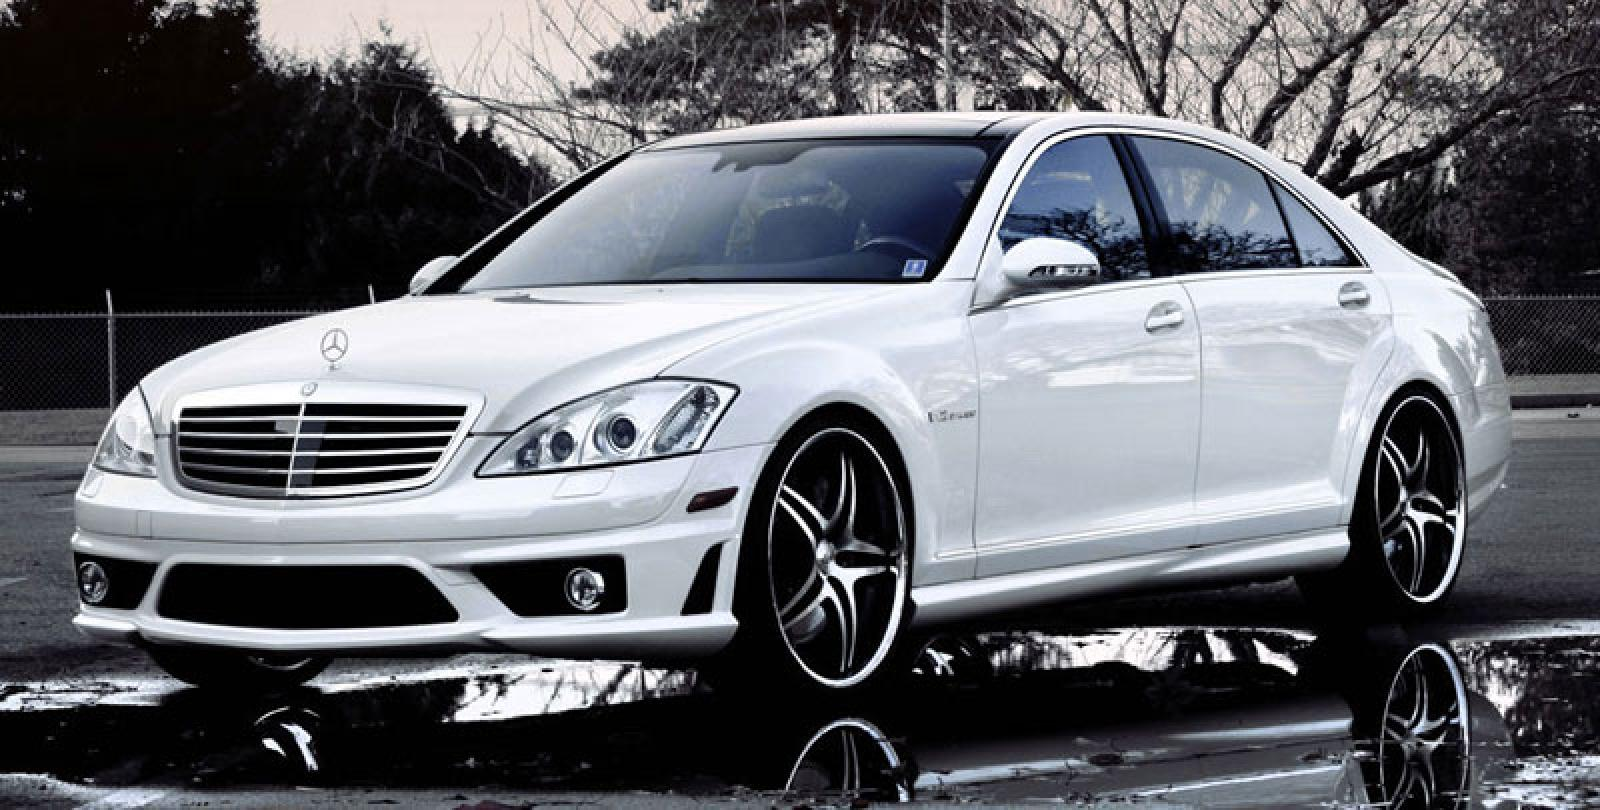 2005 mercedes benz s class information and photos zombiedrive. Black Bedroom Furniture Sets. Home Design Ideas